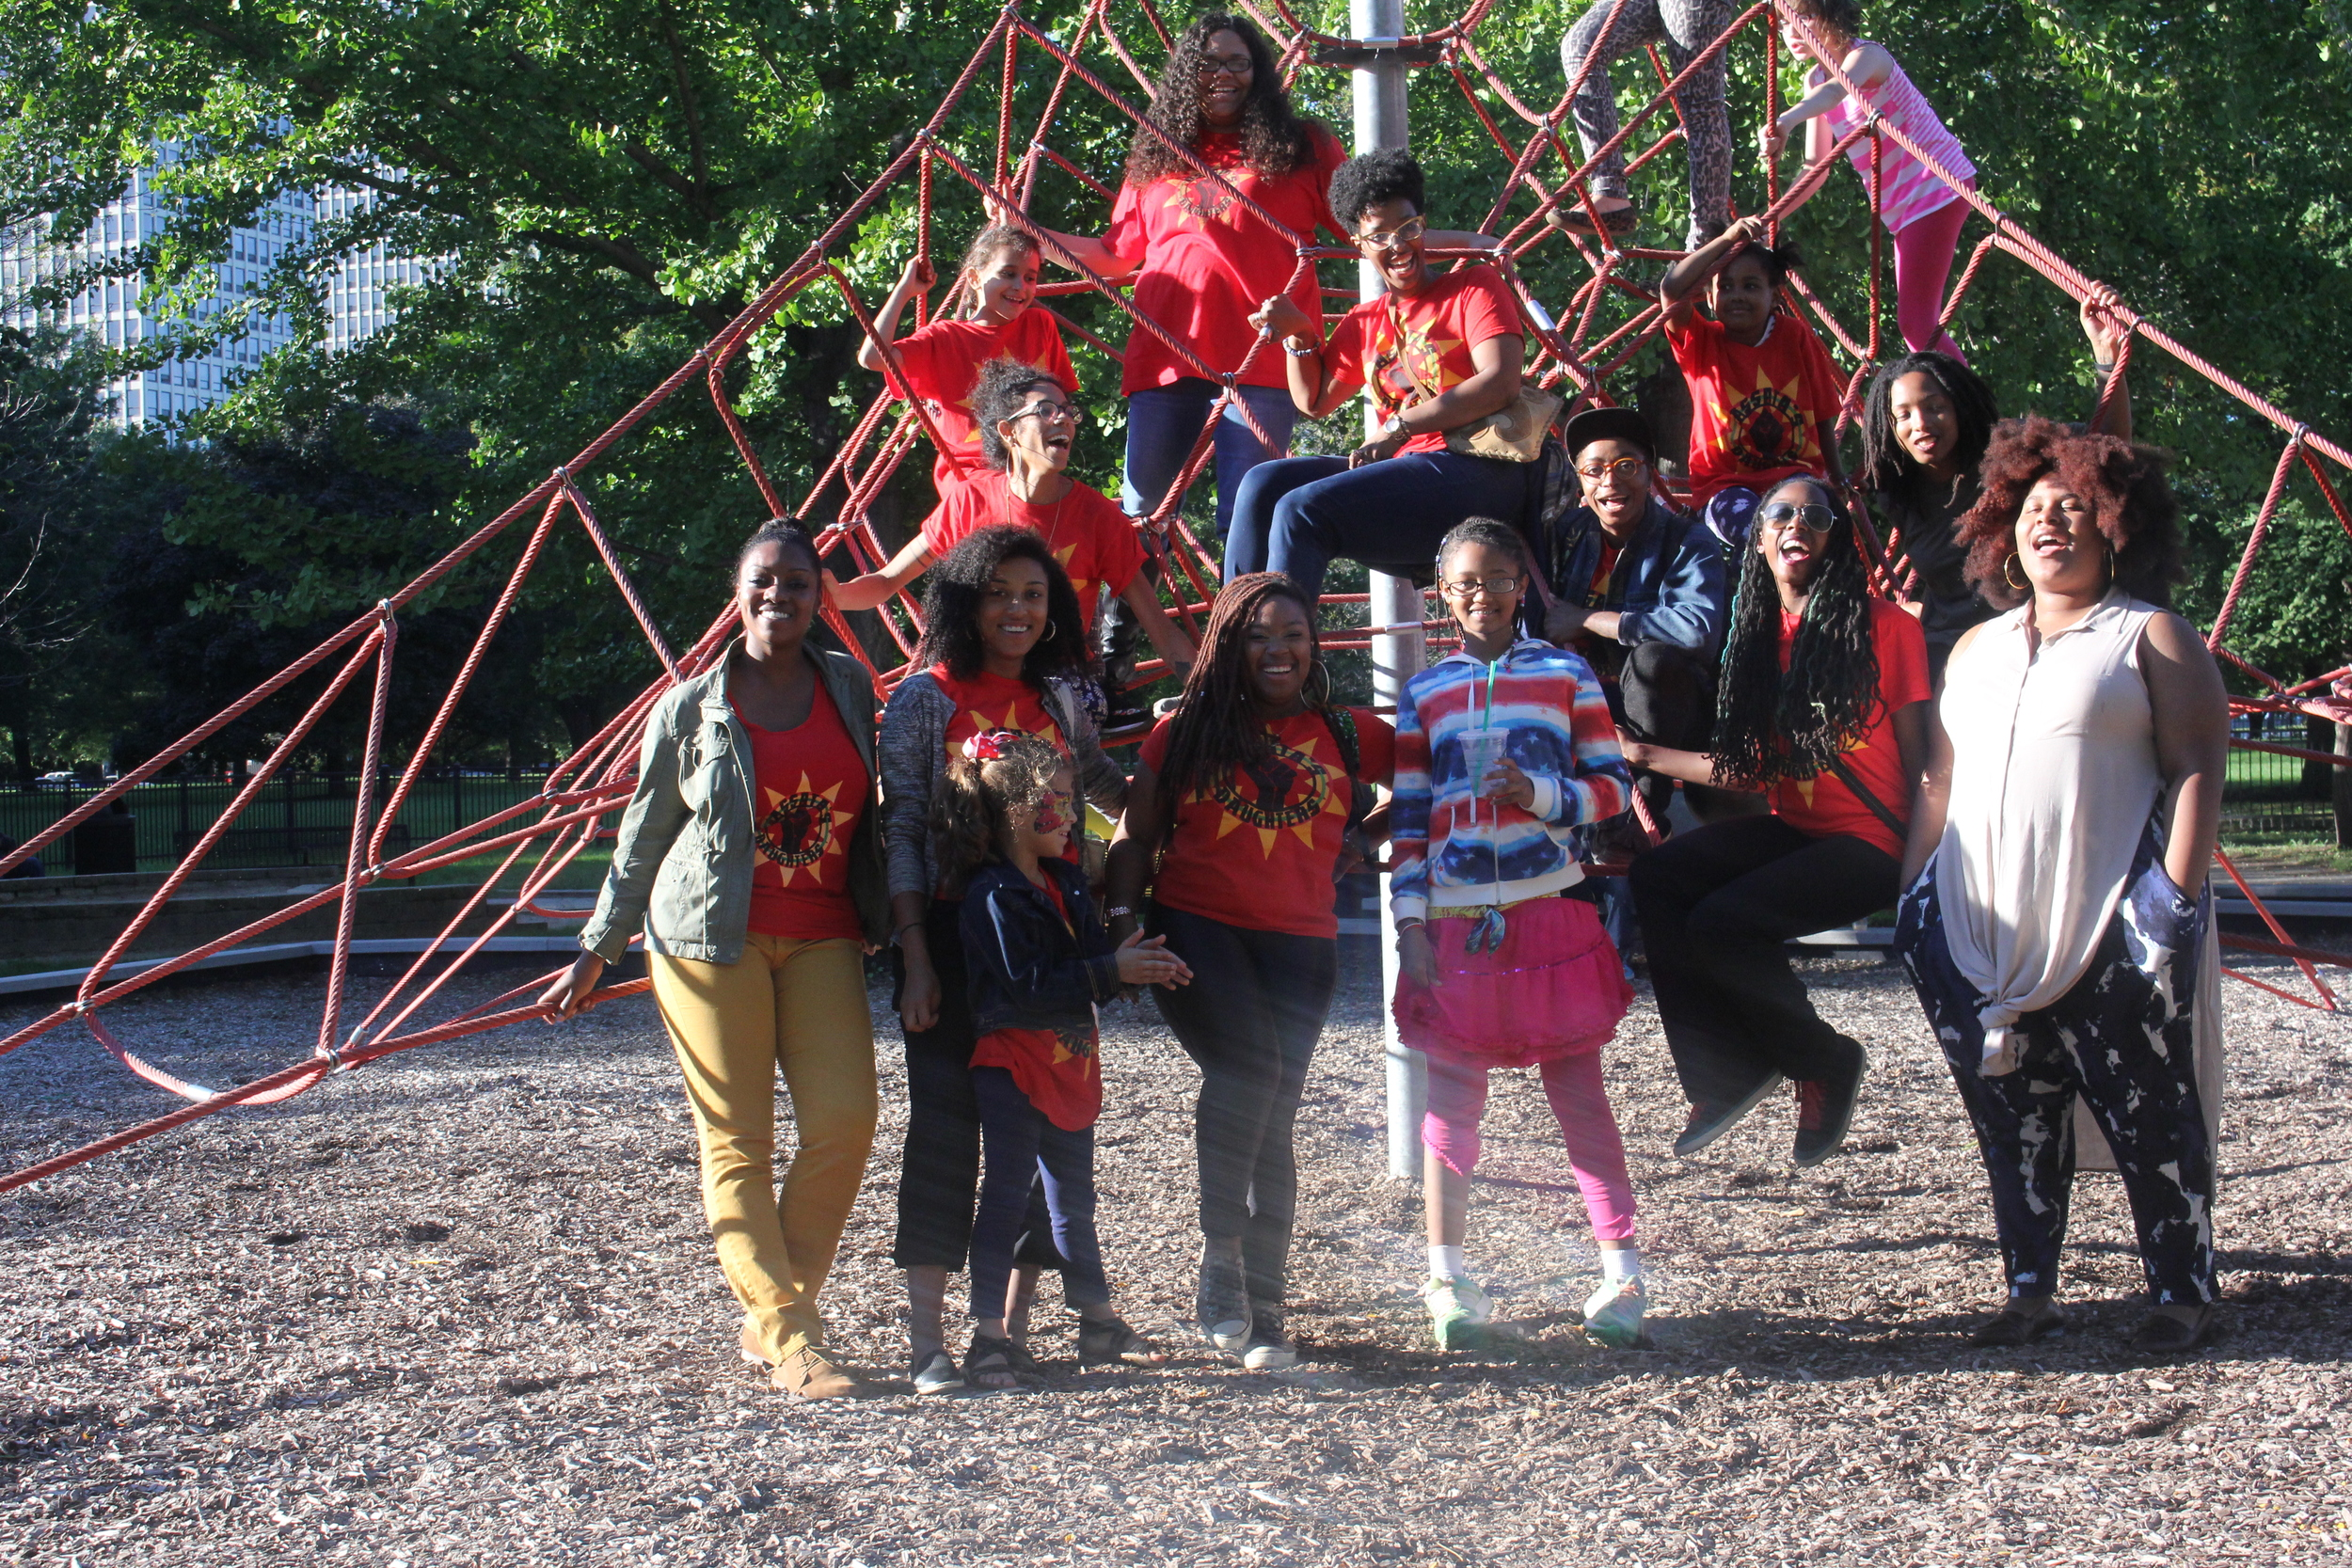 Assata's Daughters, a mentoring and empowerment non-profit for young black girls, enjoys a new Chicago Plays space  [Image with permission]